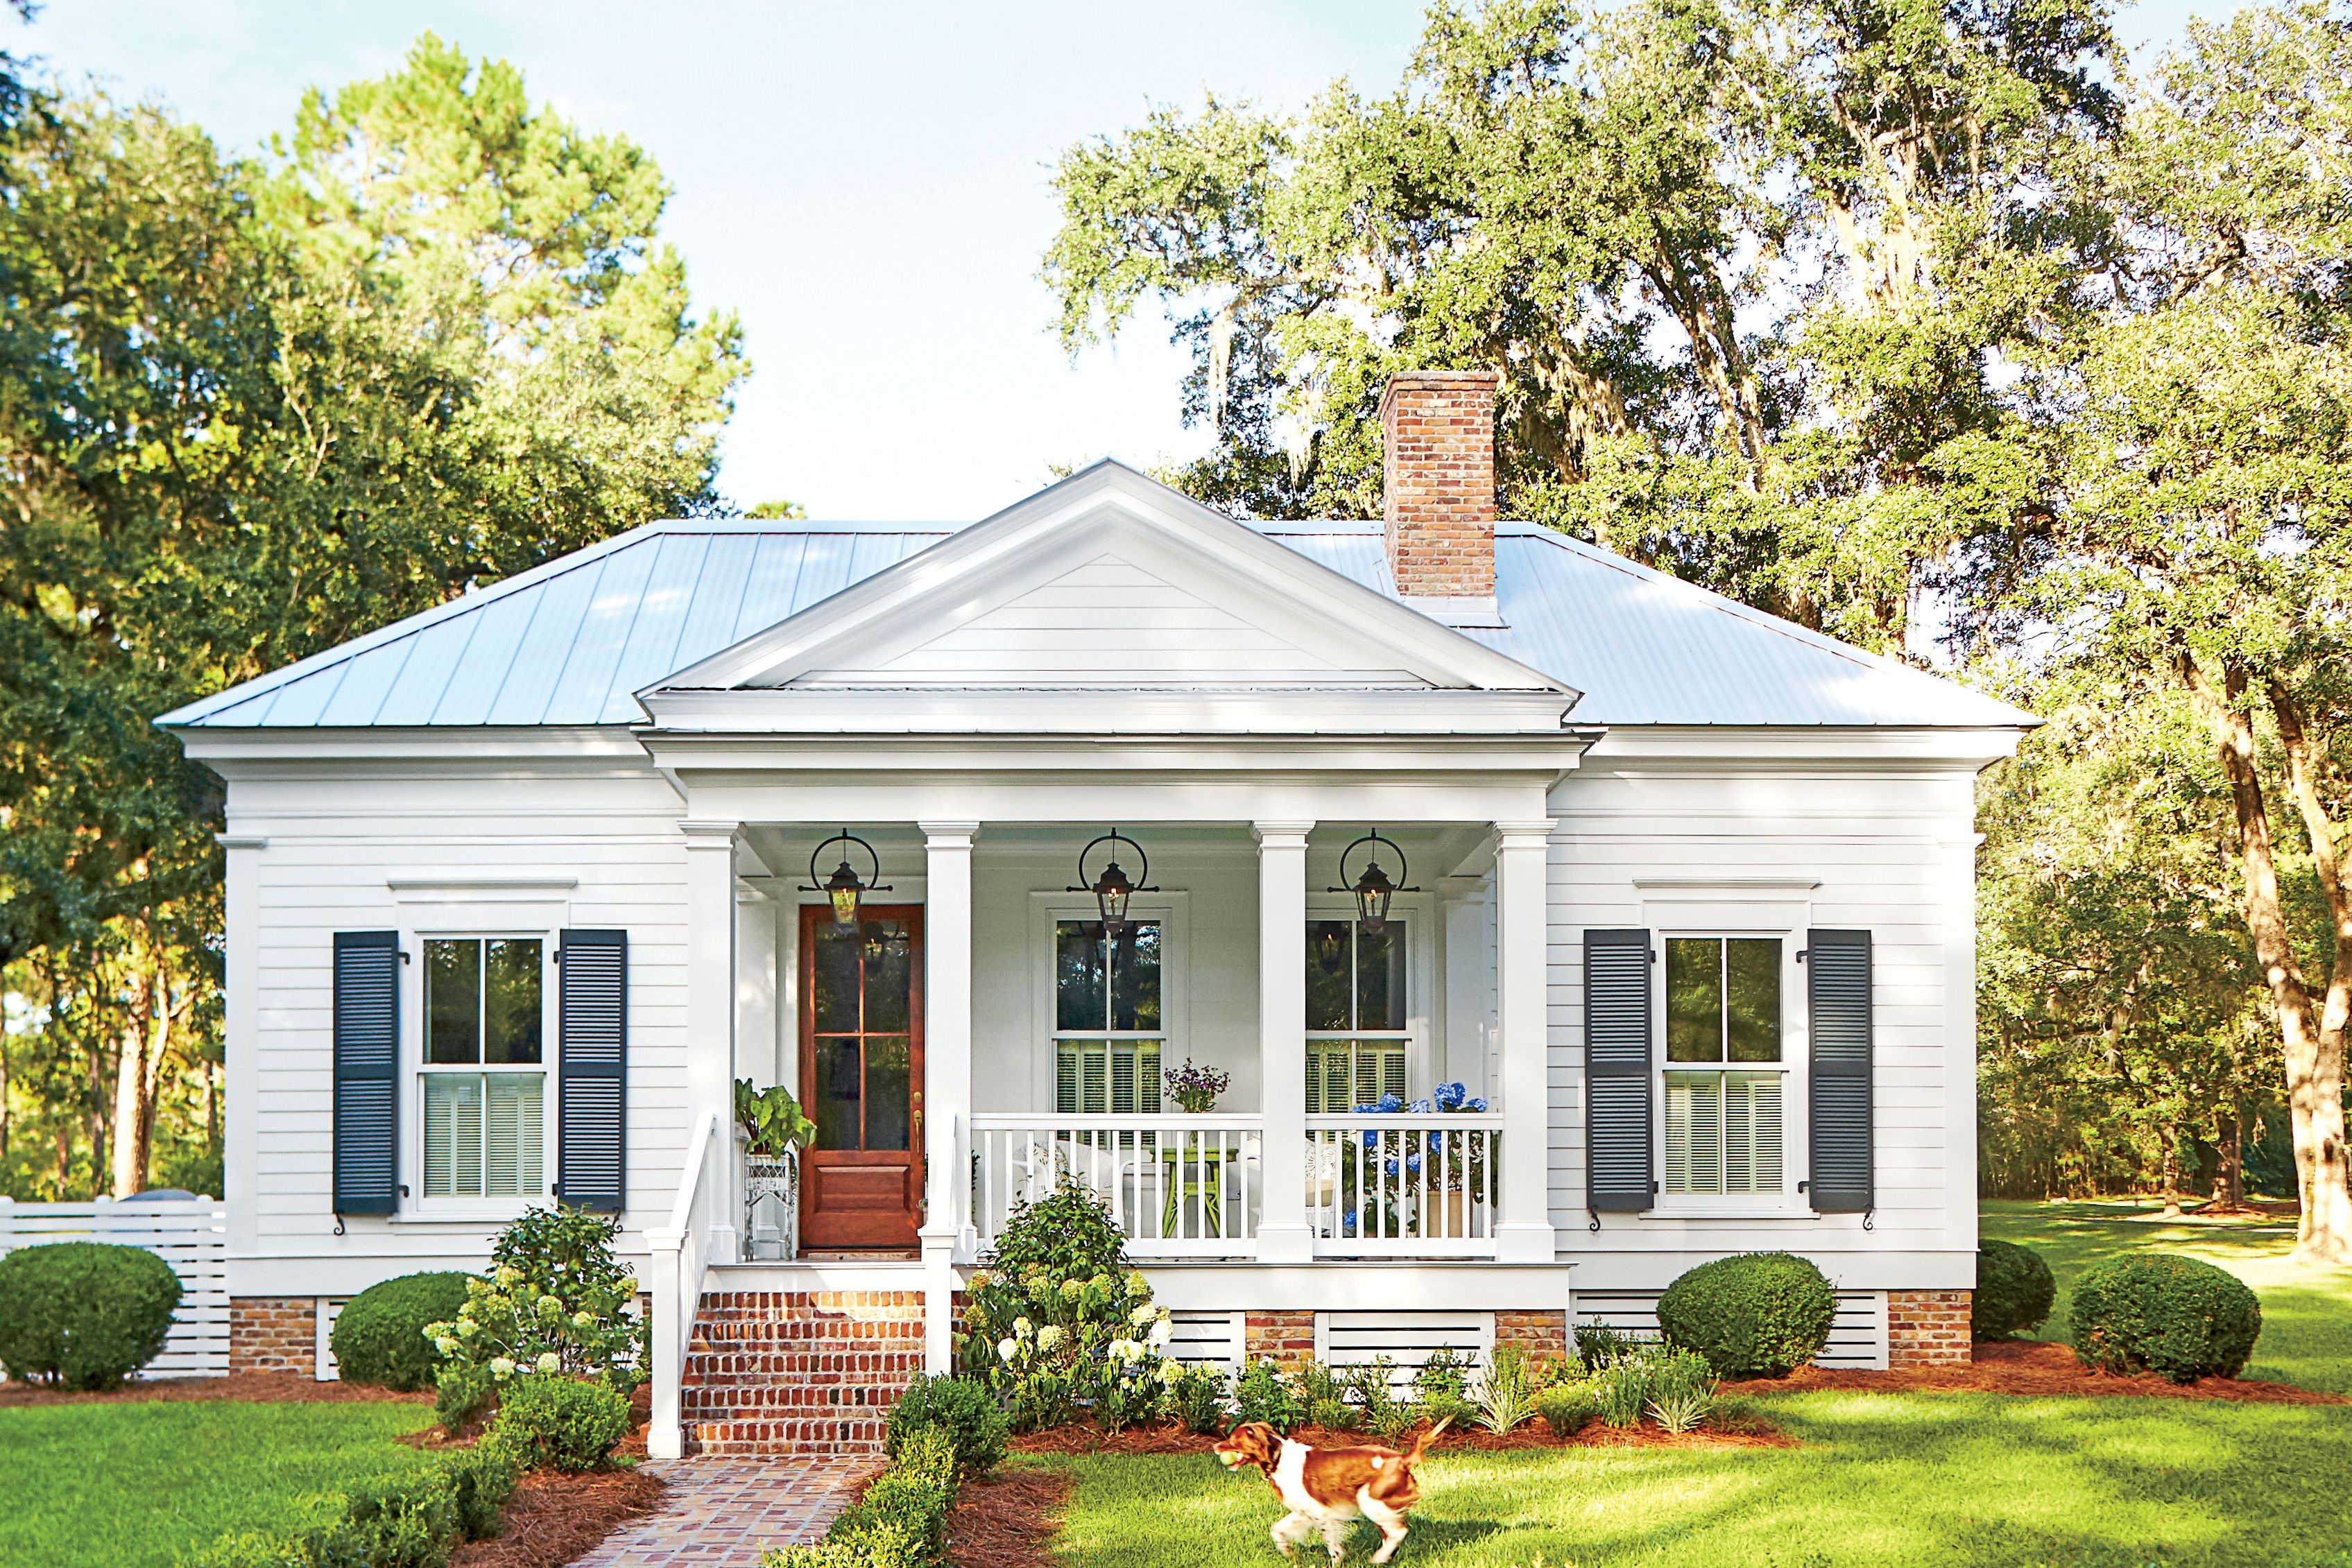 Brandon ingram florida cottage cottages pinterest for Small southern cottage house plans